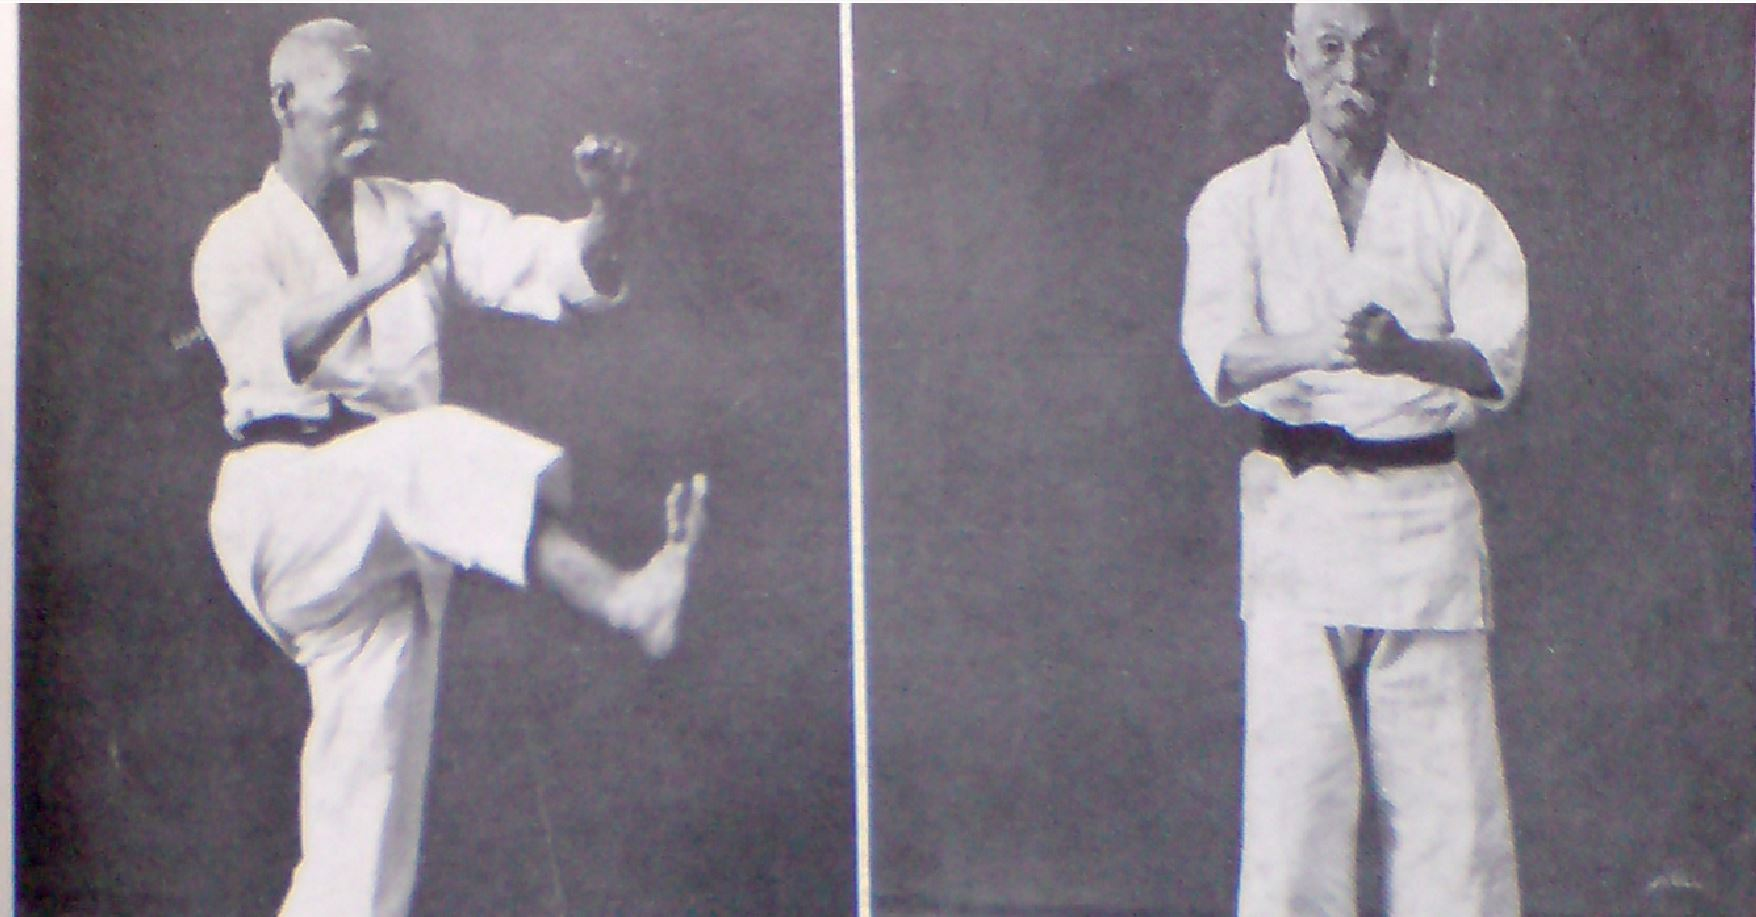 "Hanashiro Chōmo performing ""Jion"", from original 1938 edition of ""Karatedo Taikan"" of Nagamine Shoshin sensei. Photo by this author."